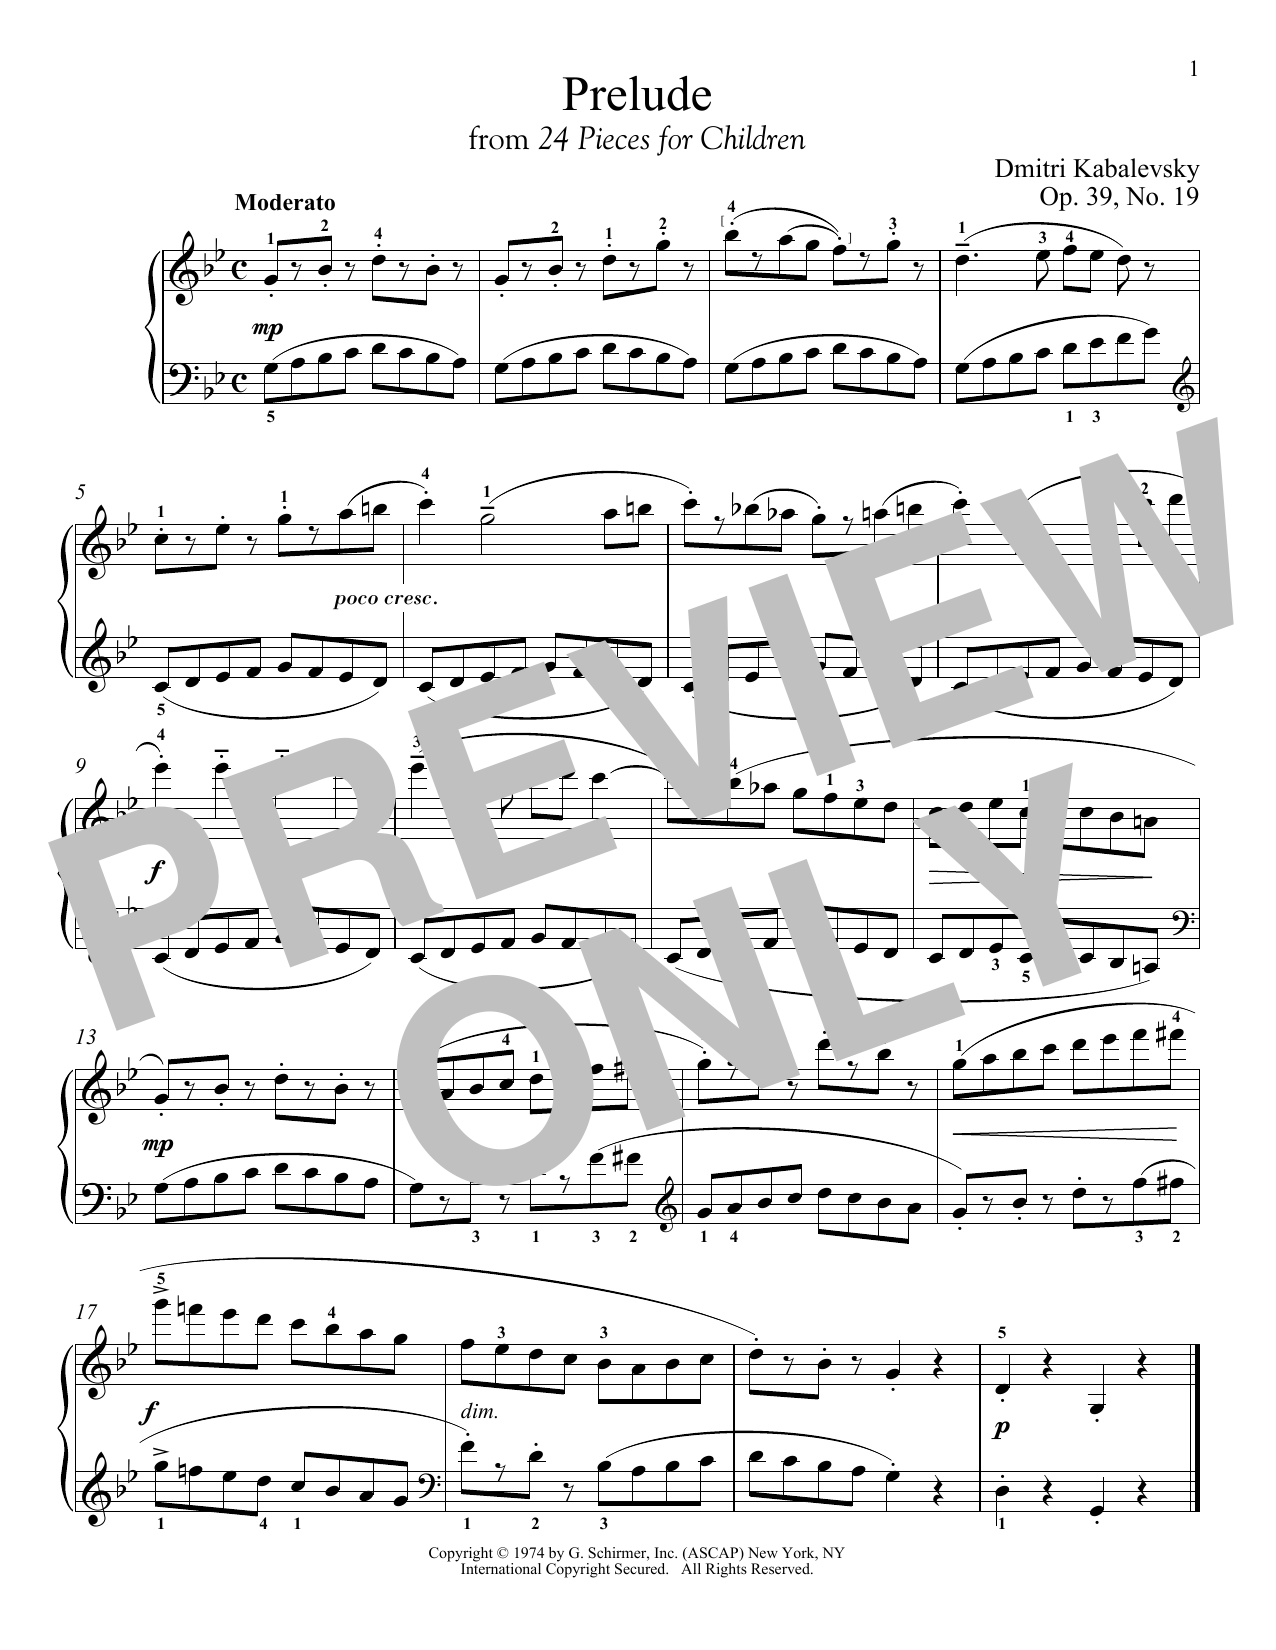 Dmitri Kabalevsky Prelude, Op. 39, No. 19 sheet music notes and chords. Download Printable PDF.